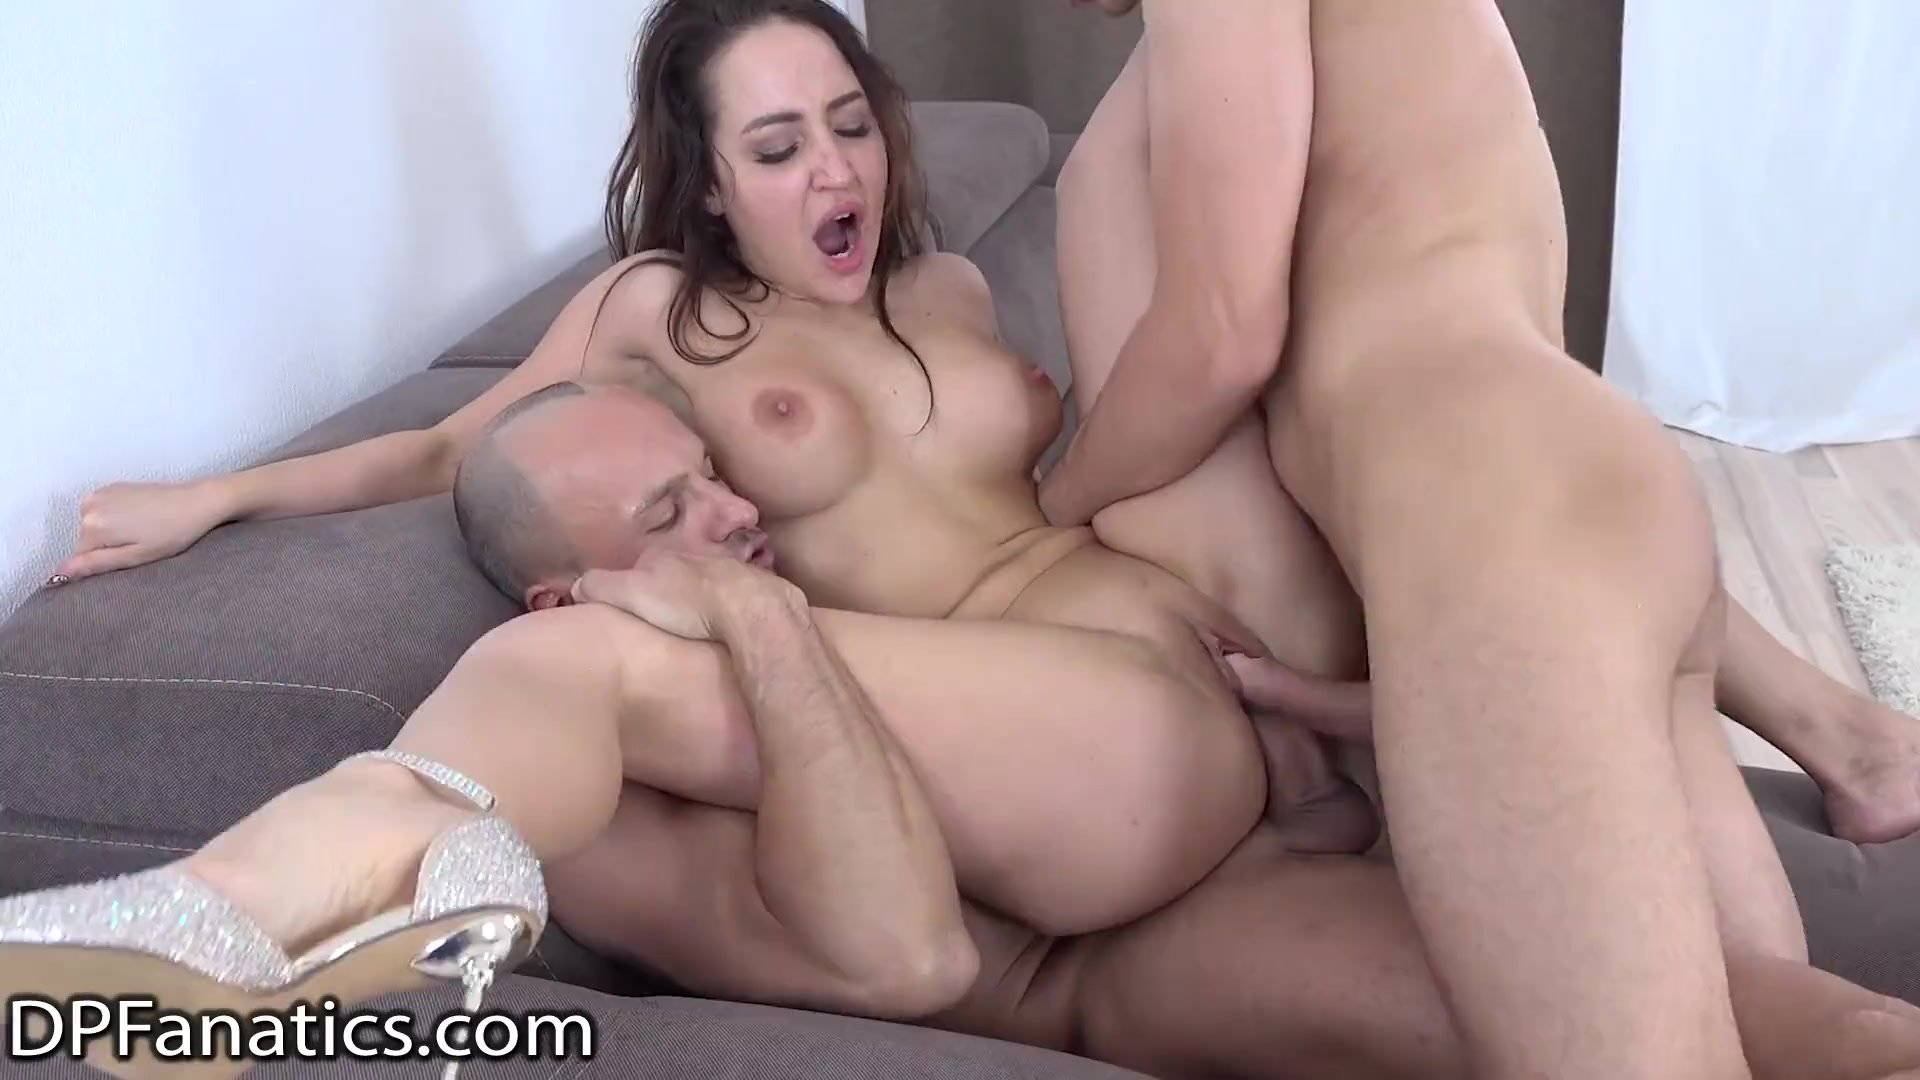 DPFanatics Euro PAWG Natali Ruby Gets Stuffed